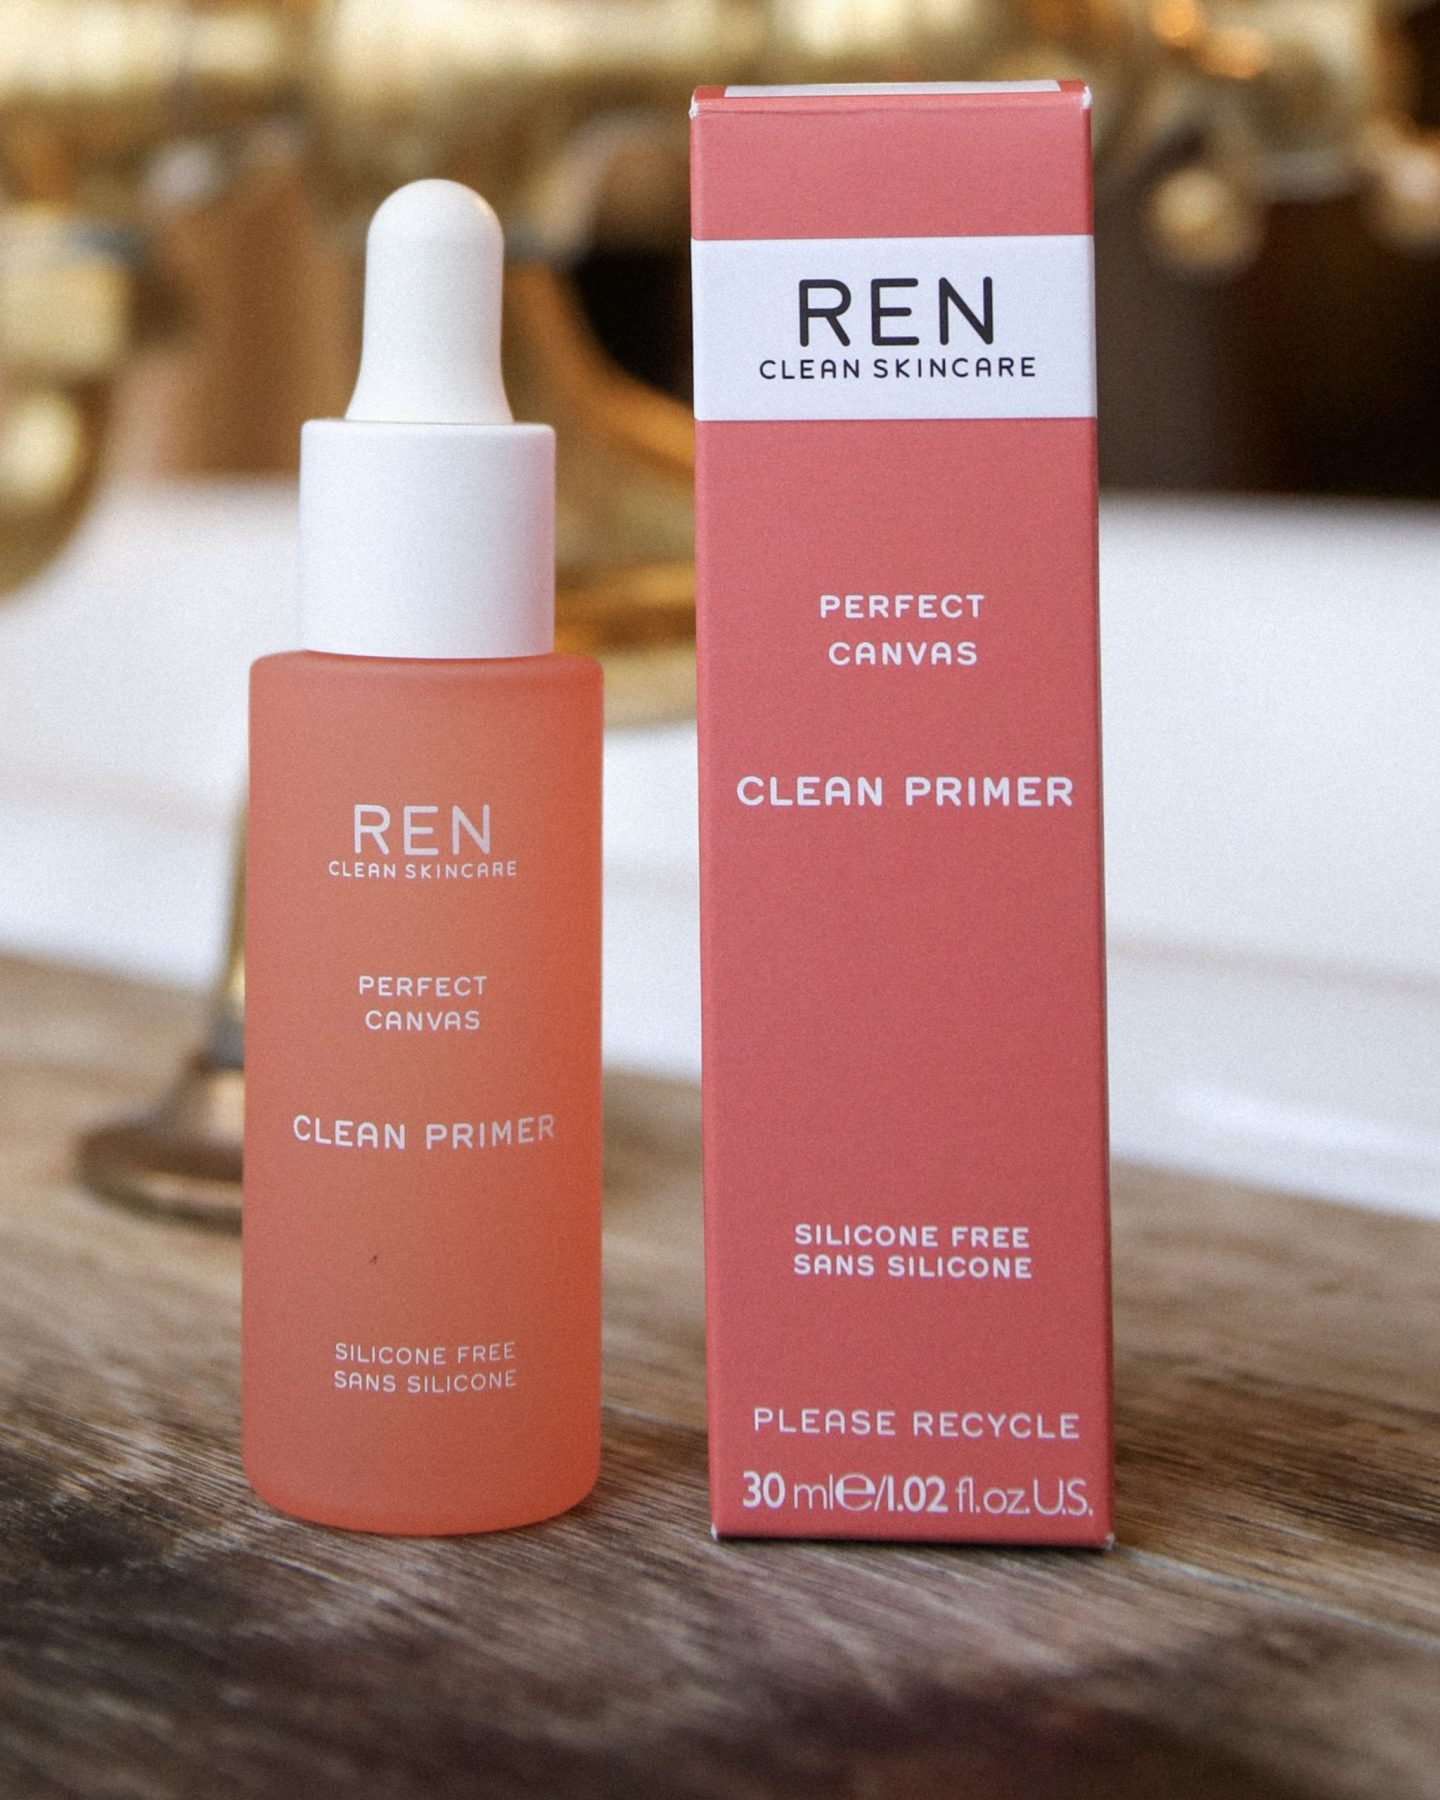 REN Perfect Canvas, Clean Primer, Katie Heath, Kalanchoe